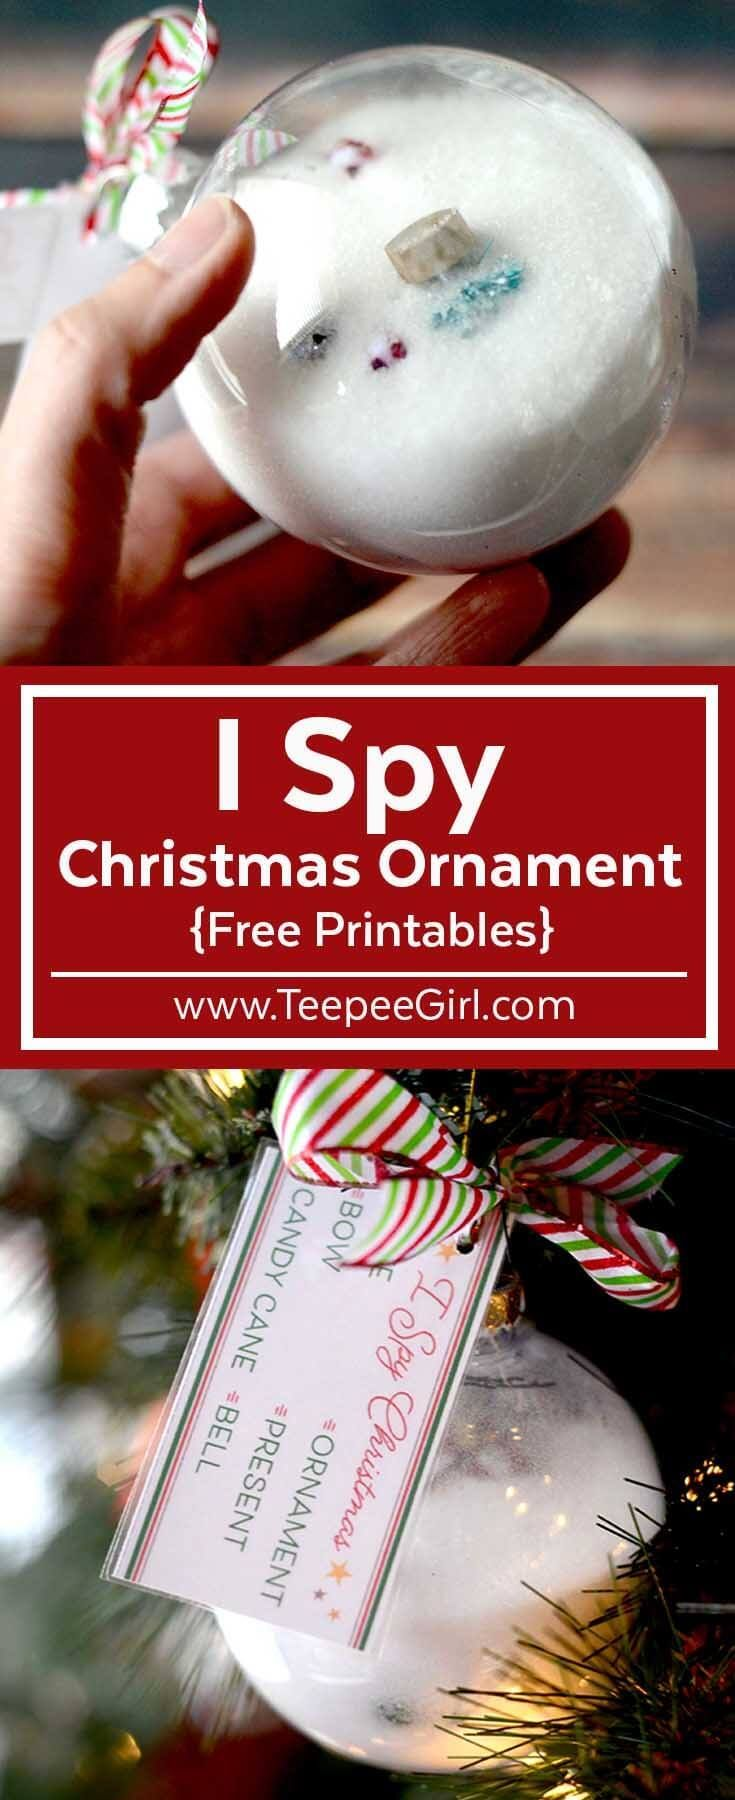 I Spy Christmas Ornament/Christmas Gift & Craft Idea for Kids! This fun I Spy Christmas Ornament makes a great gift, & kids love to make them! Get the free printables & learn how to make these at www.TeepeeGirl.com. #Christmasprintable #Christmascraft #ChristmasActivityForKids #Christmasgiftforkids